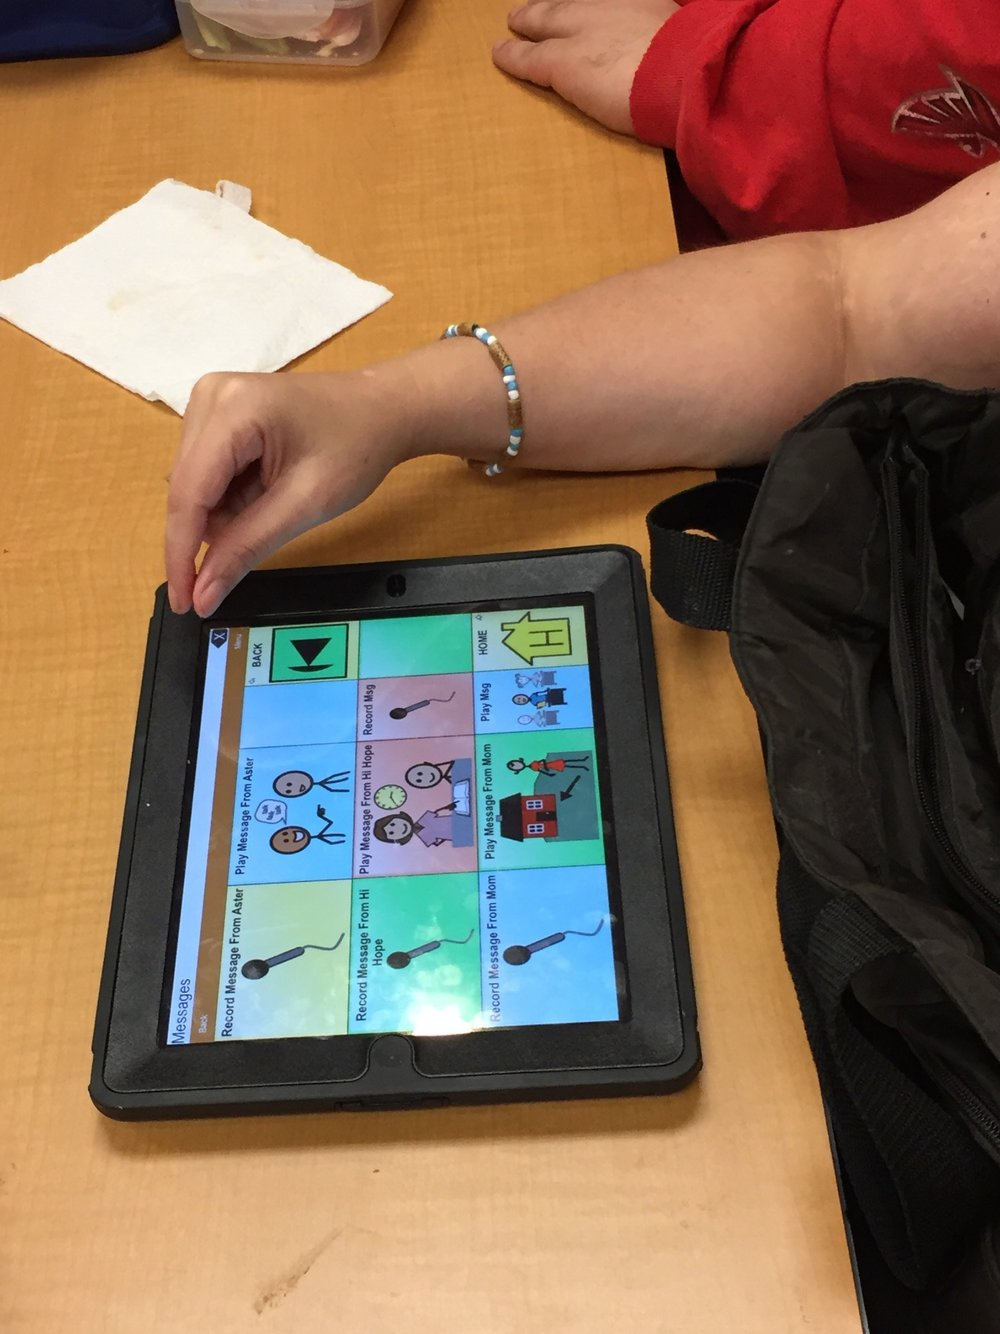 Using assistive technology to enhance communication abilities